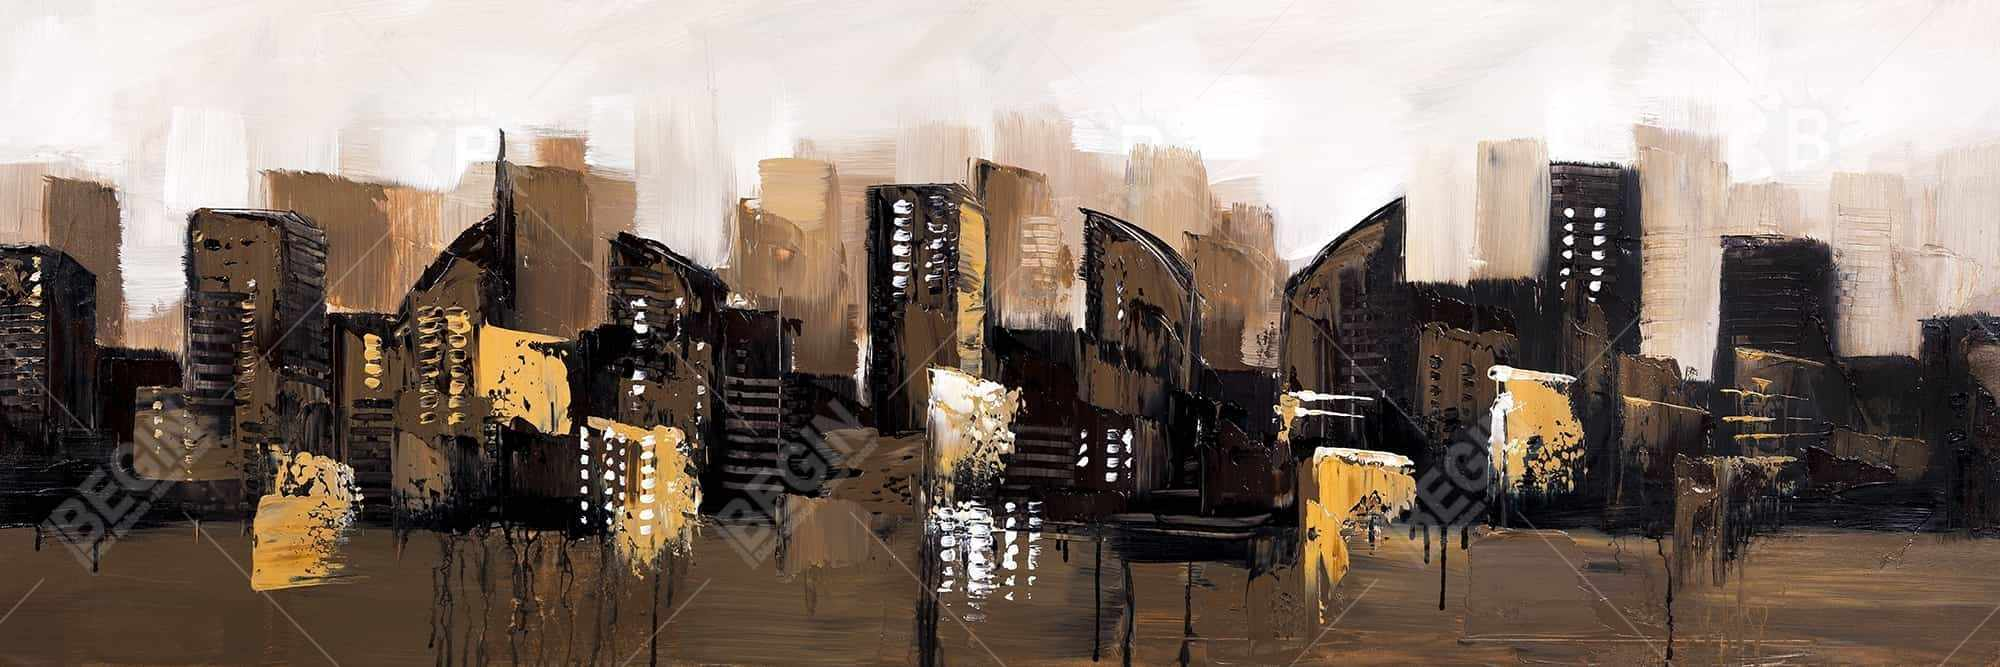 Brown abstract cityscape